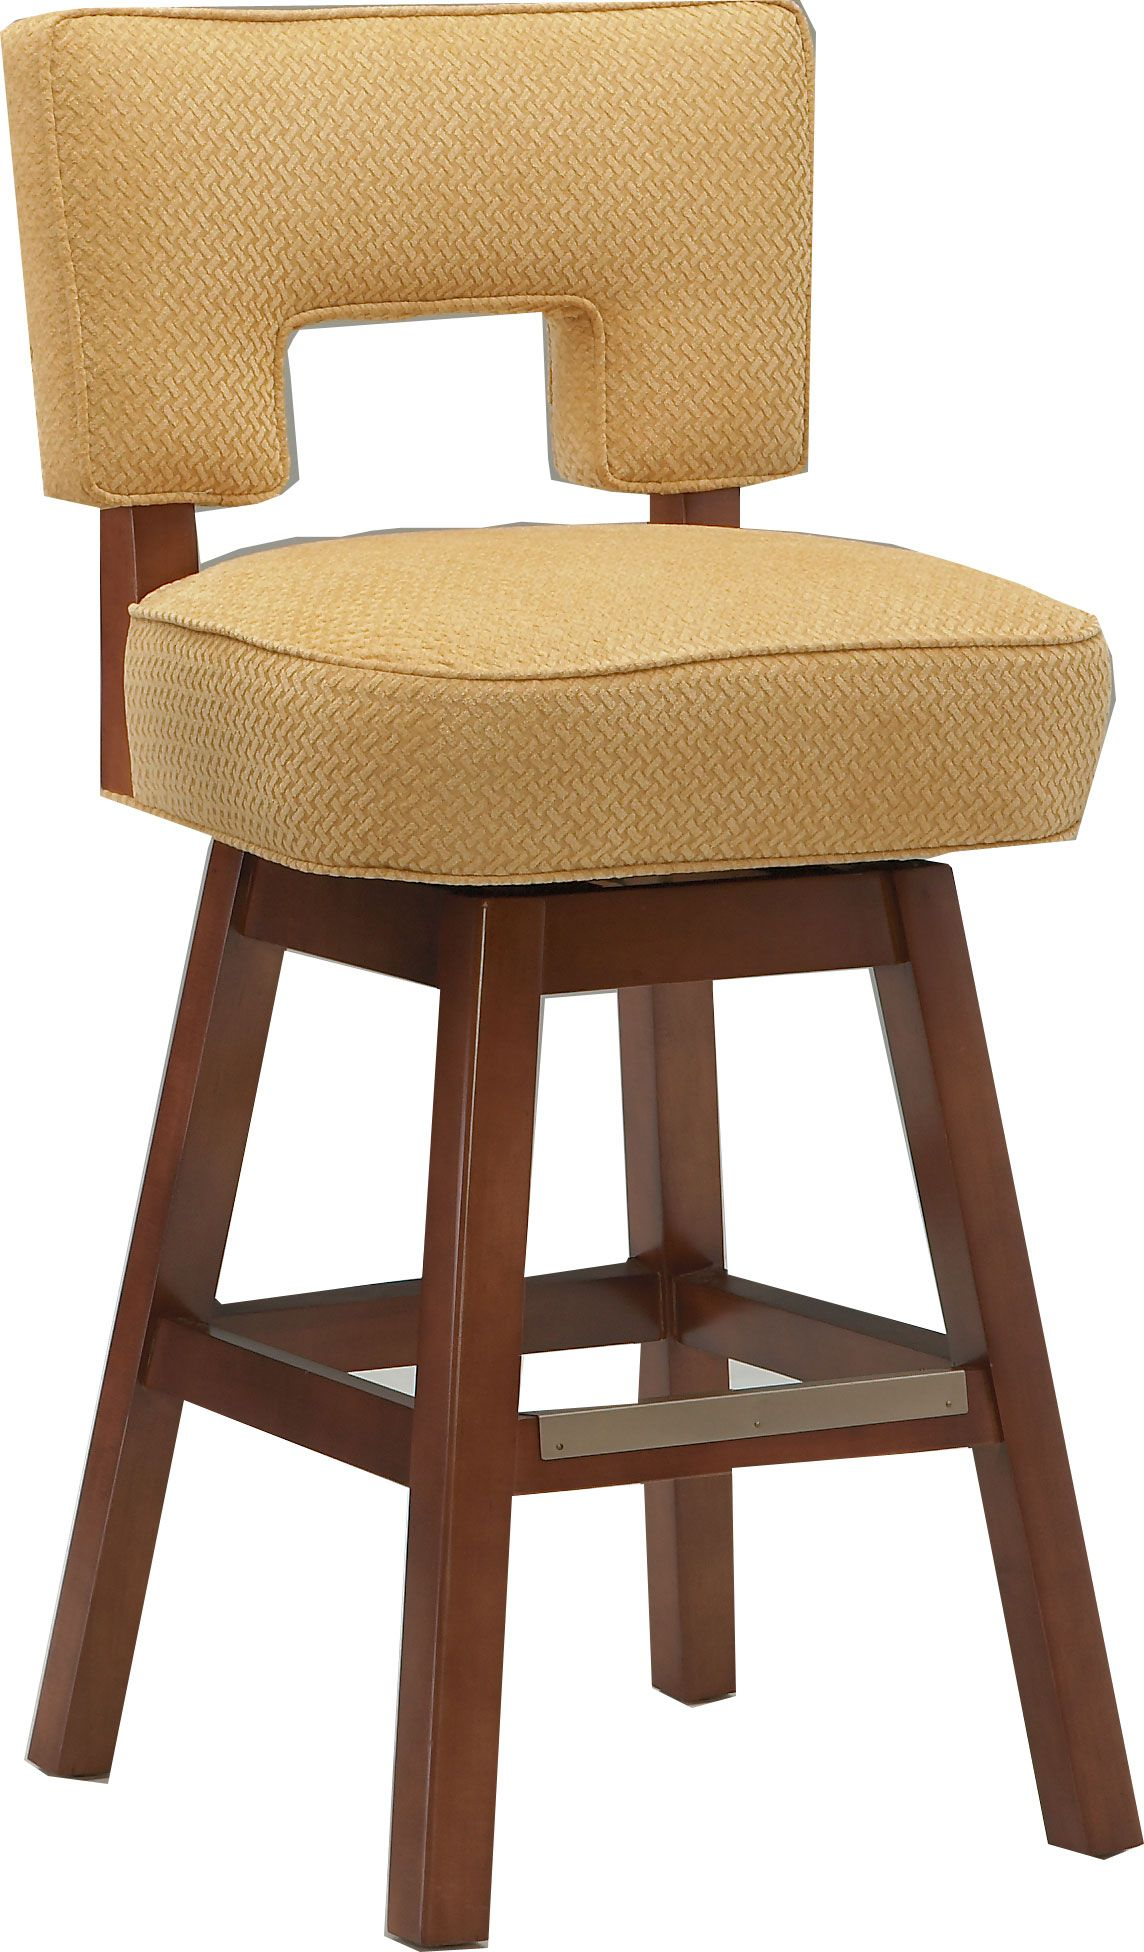 Cox Furniture Southport Nc #29: COX 702C SWIVEL COUNTER STOOL: Customize Upholstery, Frame Finish, And Foot Plate.